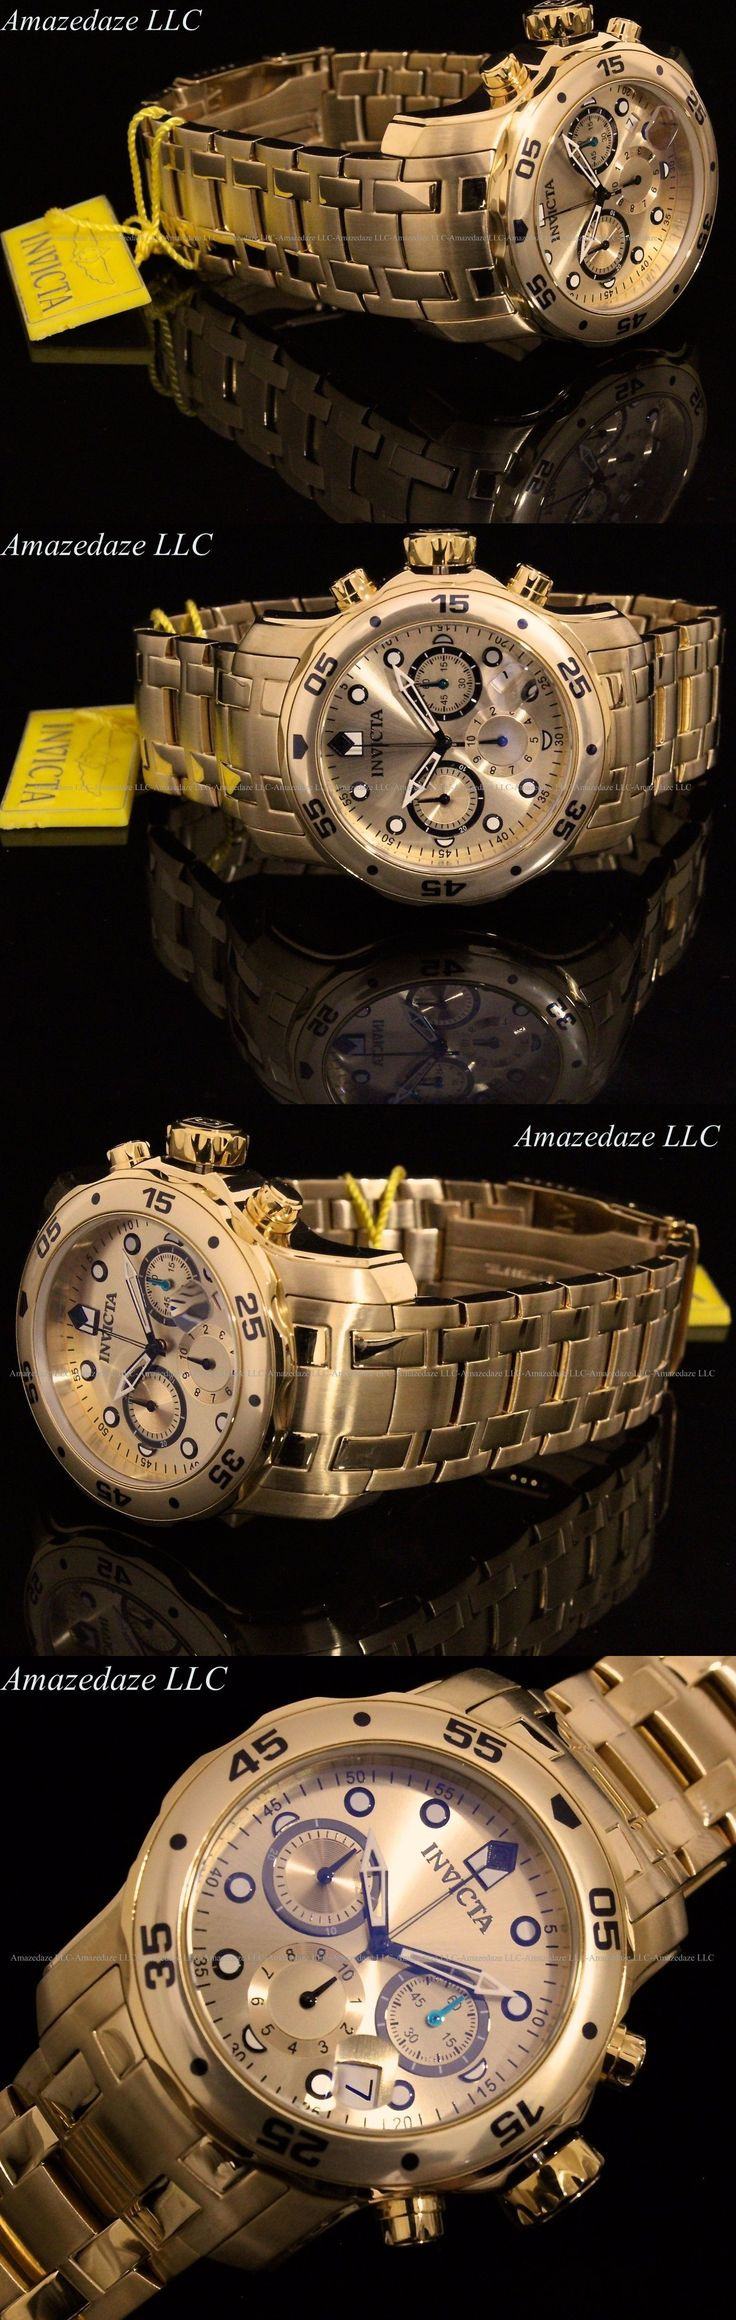 Wristwatches 31387: New Invicta Mens 18K Gold Plated Stainless Steel Chronograph 200M Scuba Watch -> BUY IT NOW ONLY: $104.99 on eBay!